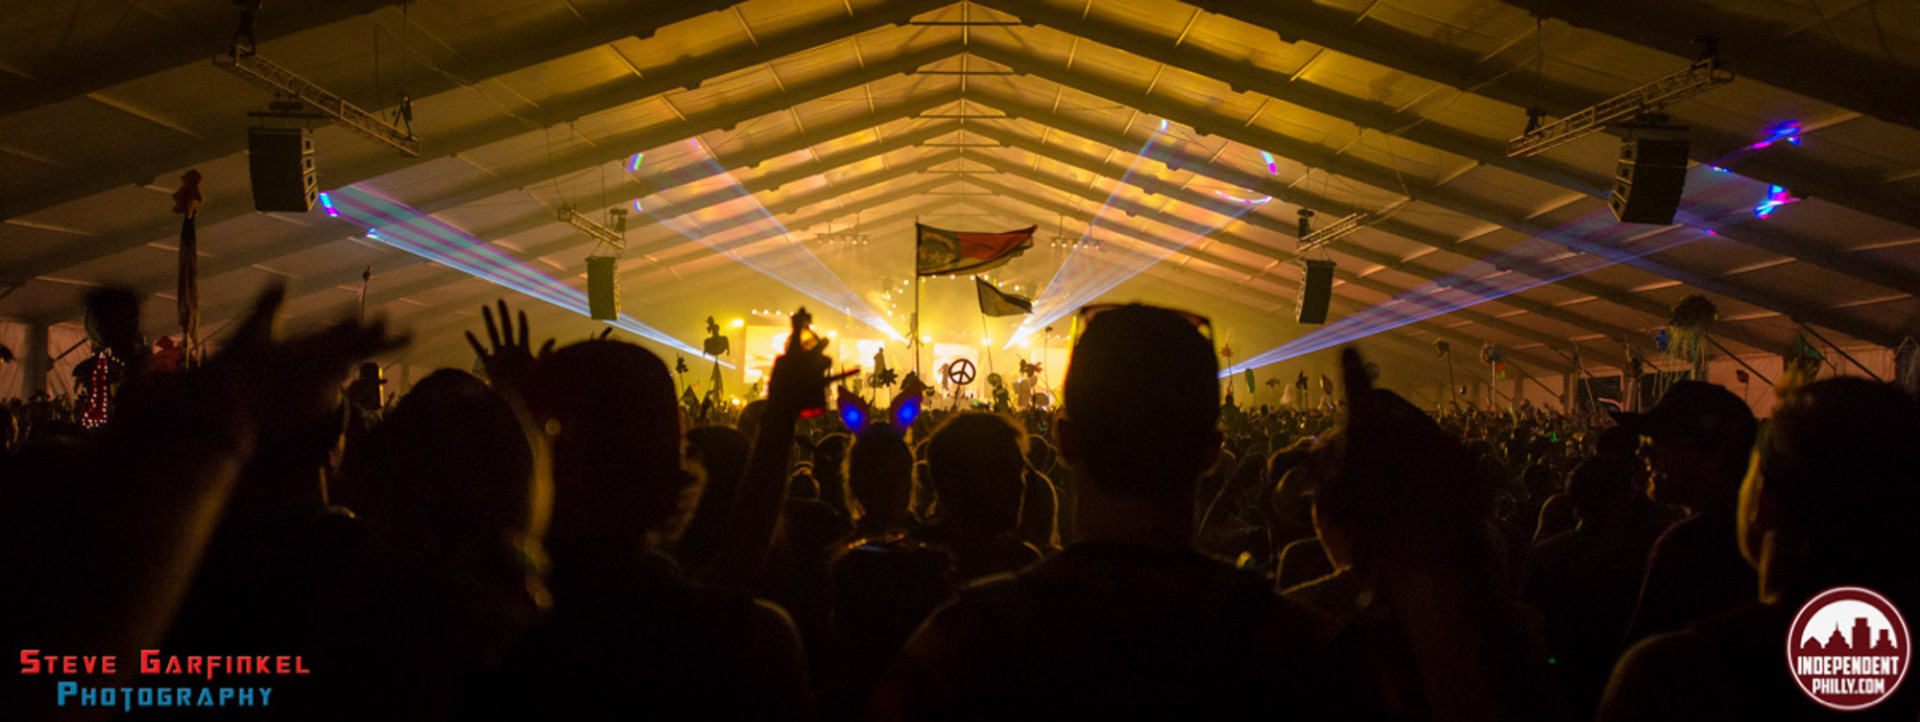 Camp_Bisco-73